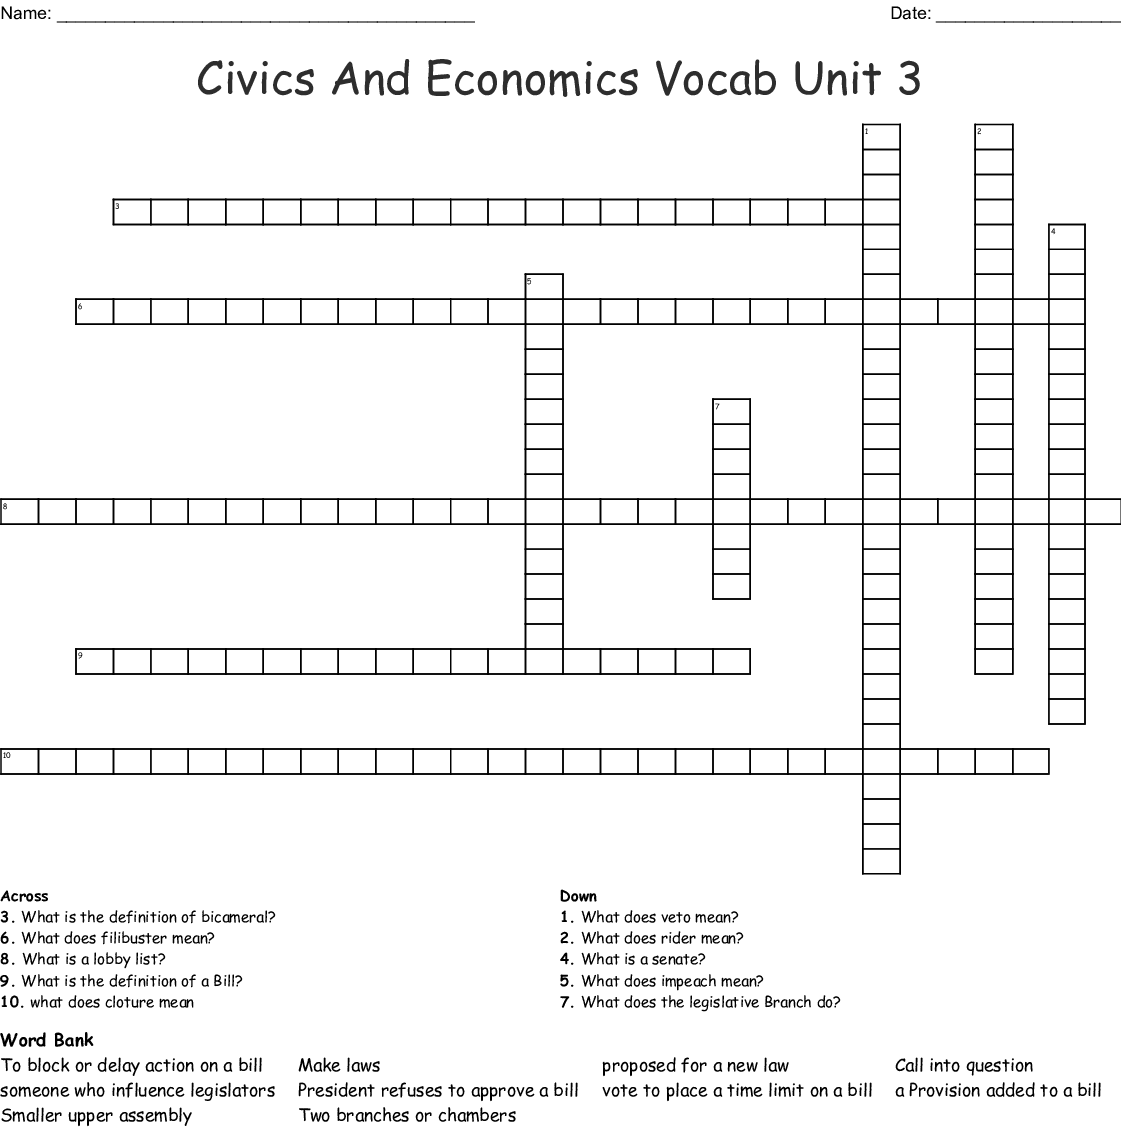 Civics And Economics Vocab Unit 3 Crossword